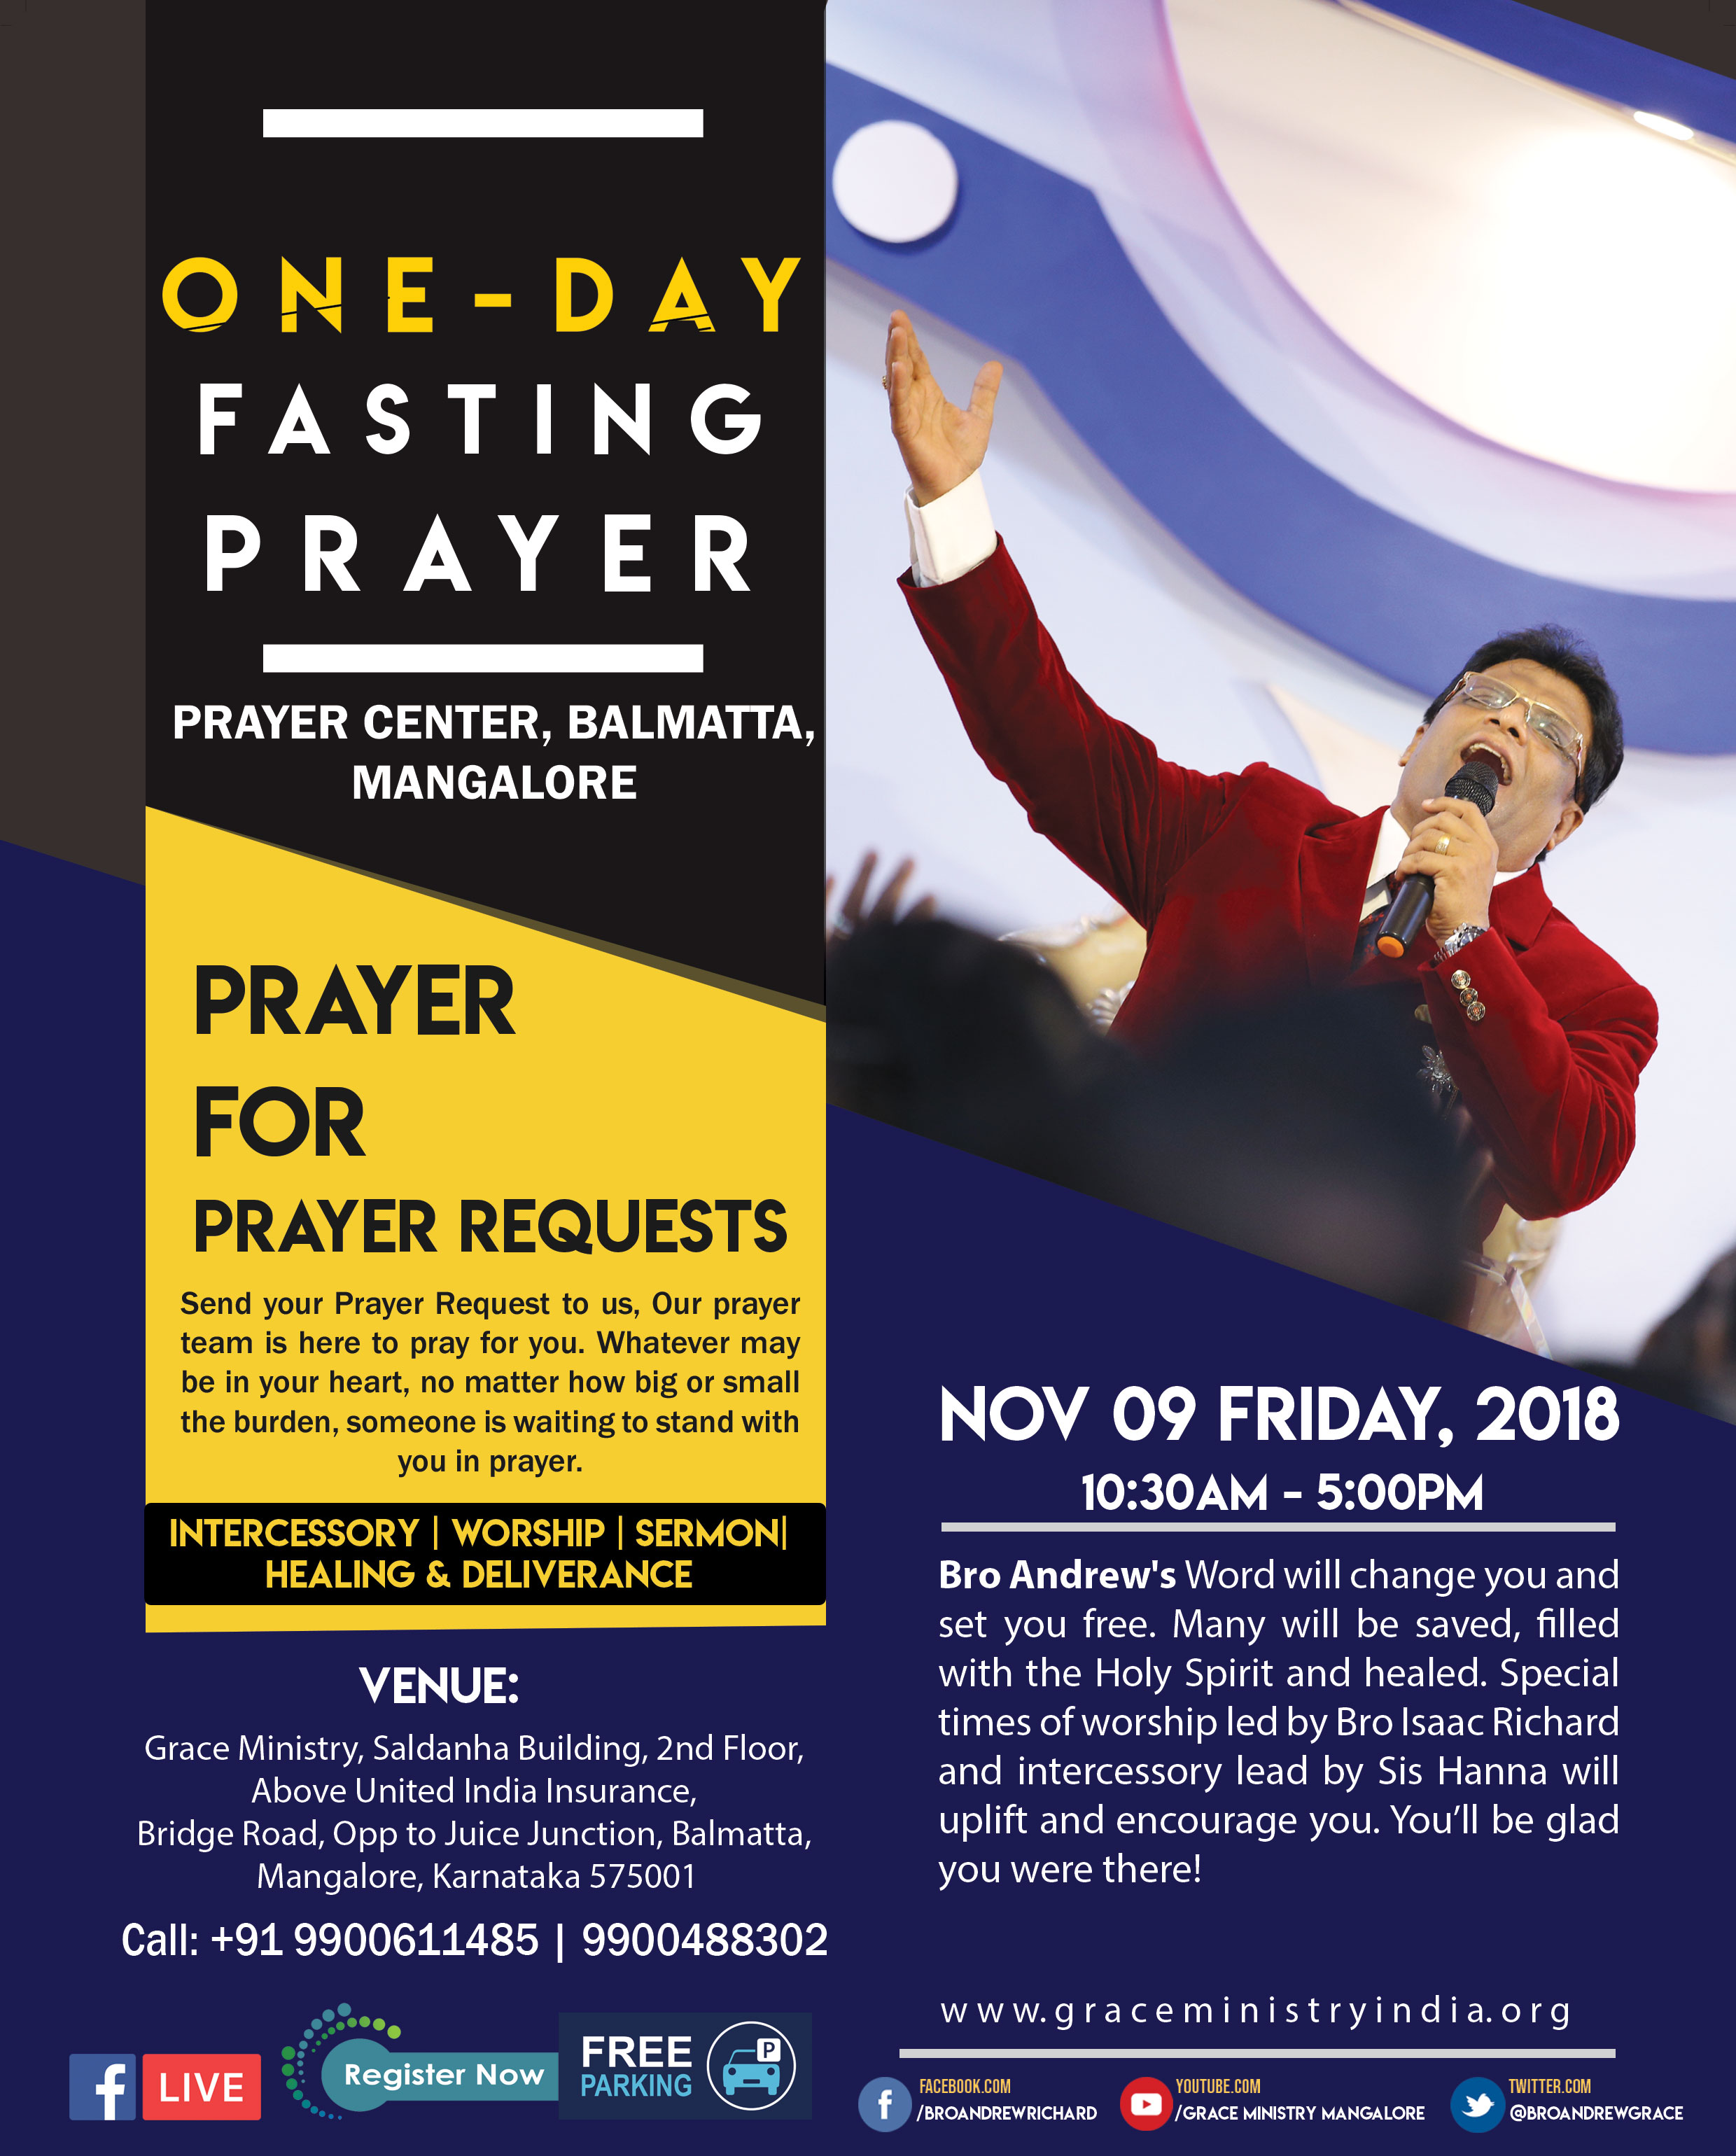 Join the One Day Fasting Prayer arranged by Grace Ministry to Prayer for all the Prayer Requests on Nov 09 Friday, 2018 at the Prayer Center in Balmatta, Mangalore. Come and be Blessed!